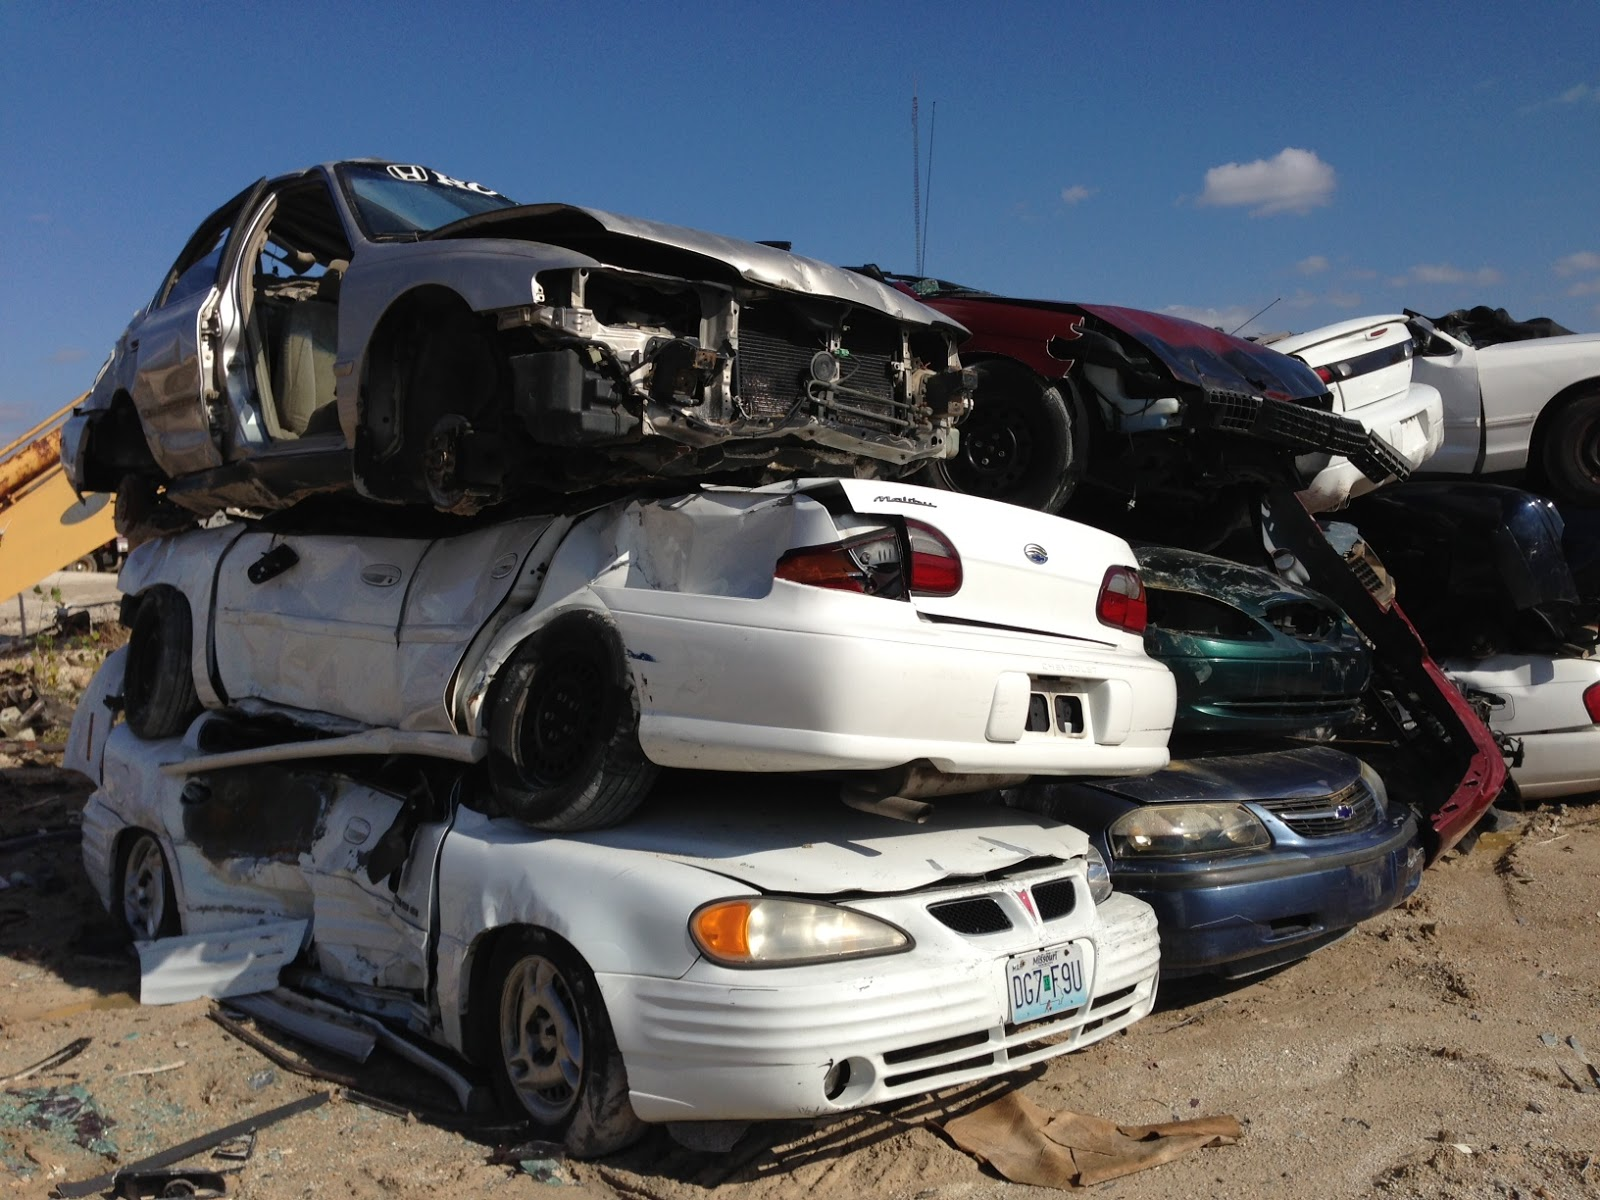 Sell & Buy Junk Cars